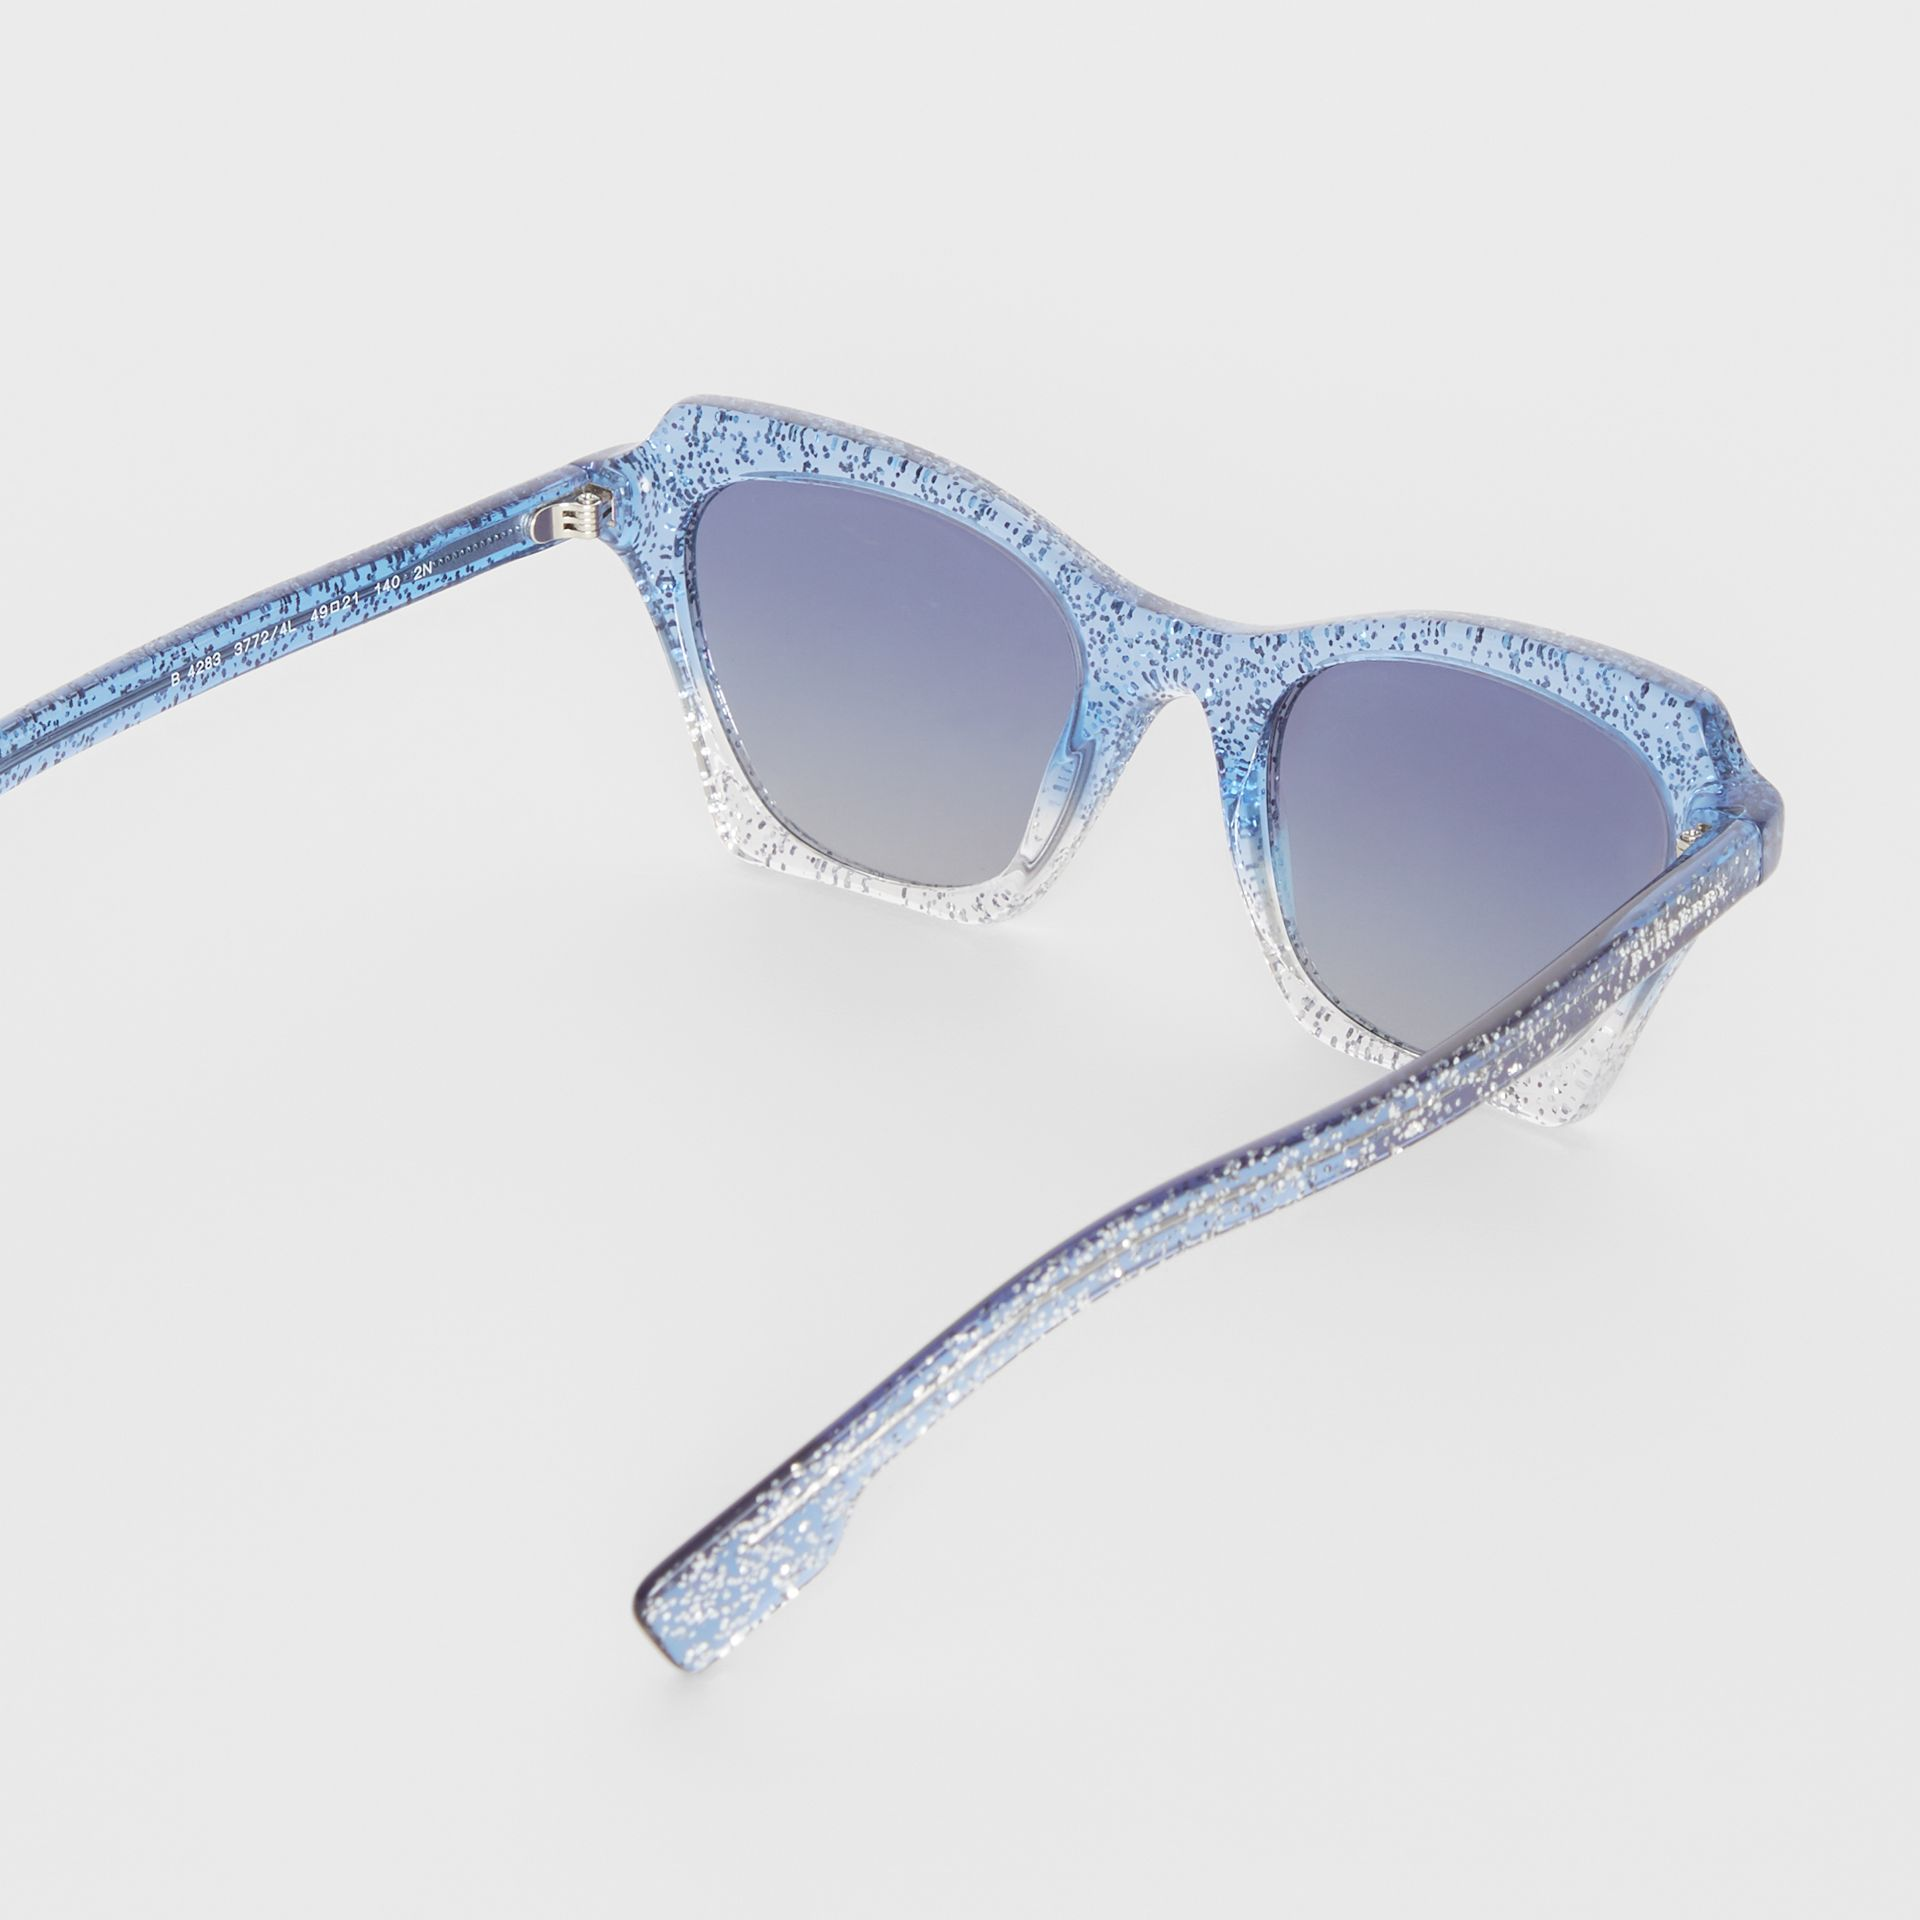 Butterfly Frame Sunglasses in Blue - Women | Burberry - gallery image 4